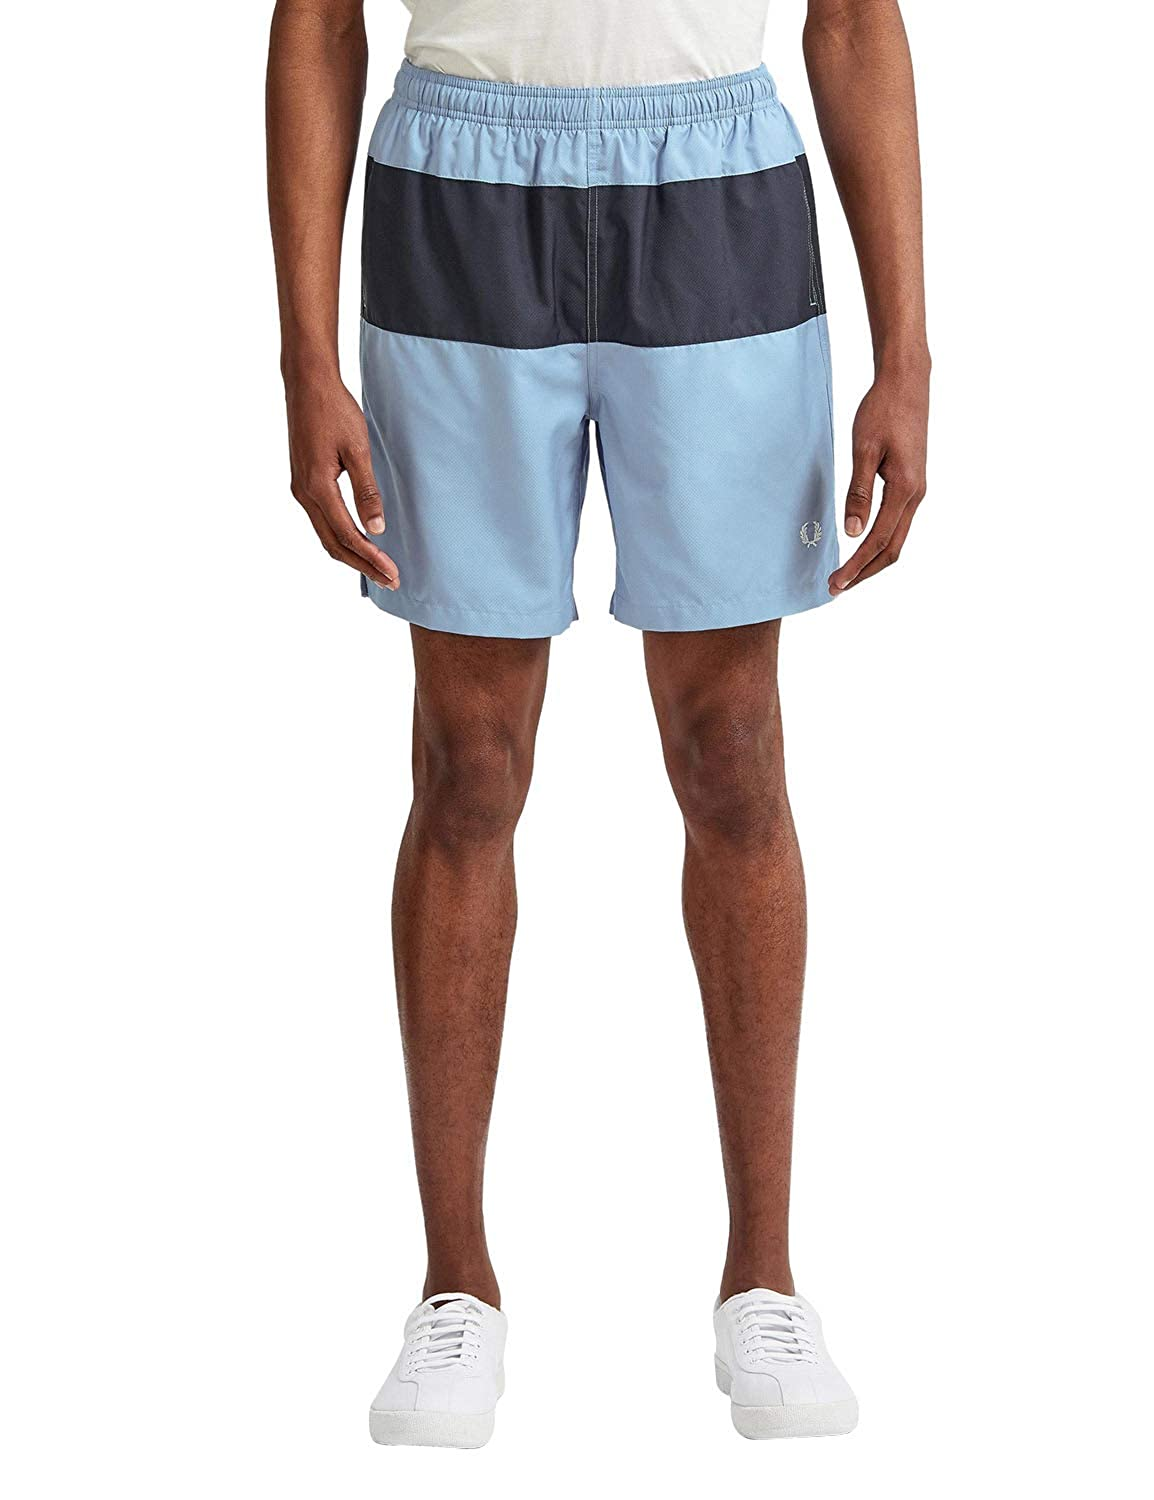 Sky S Frouge Perry Hommes's Panelled Swimcourte